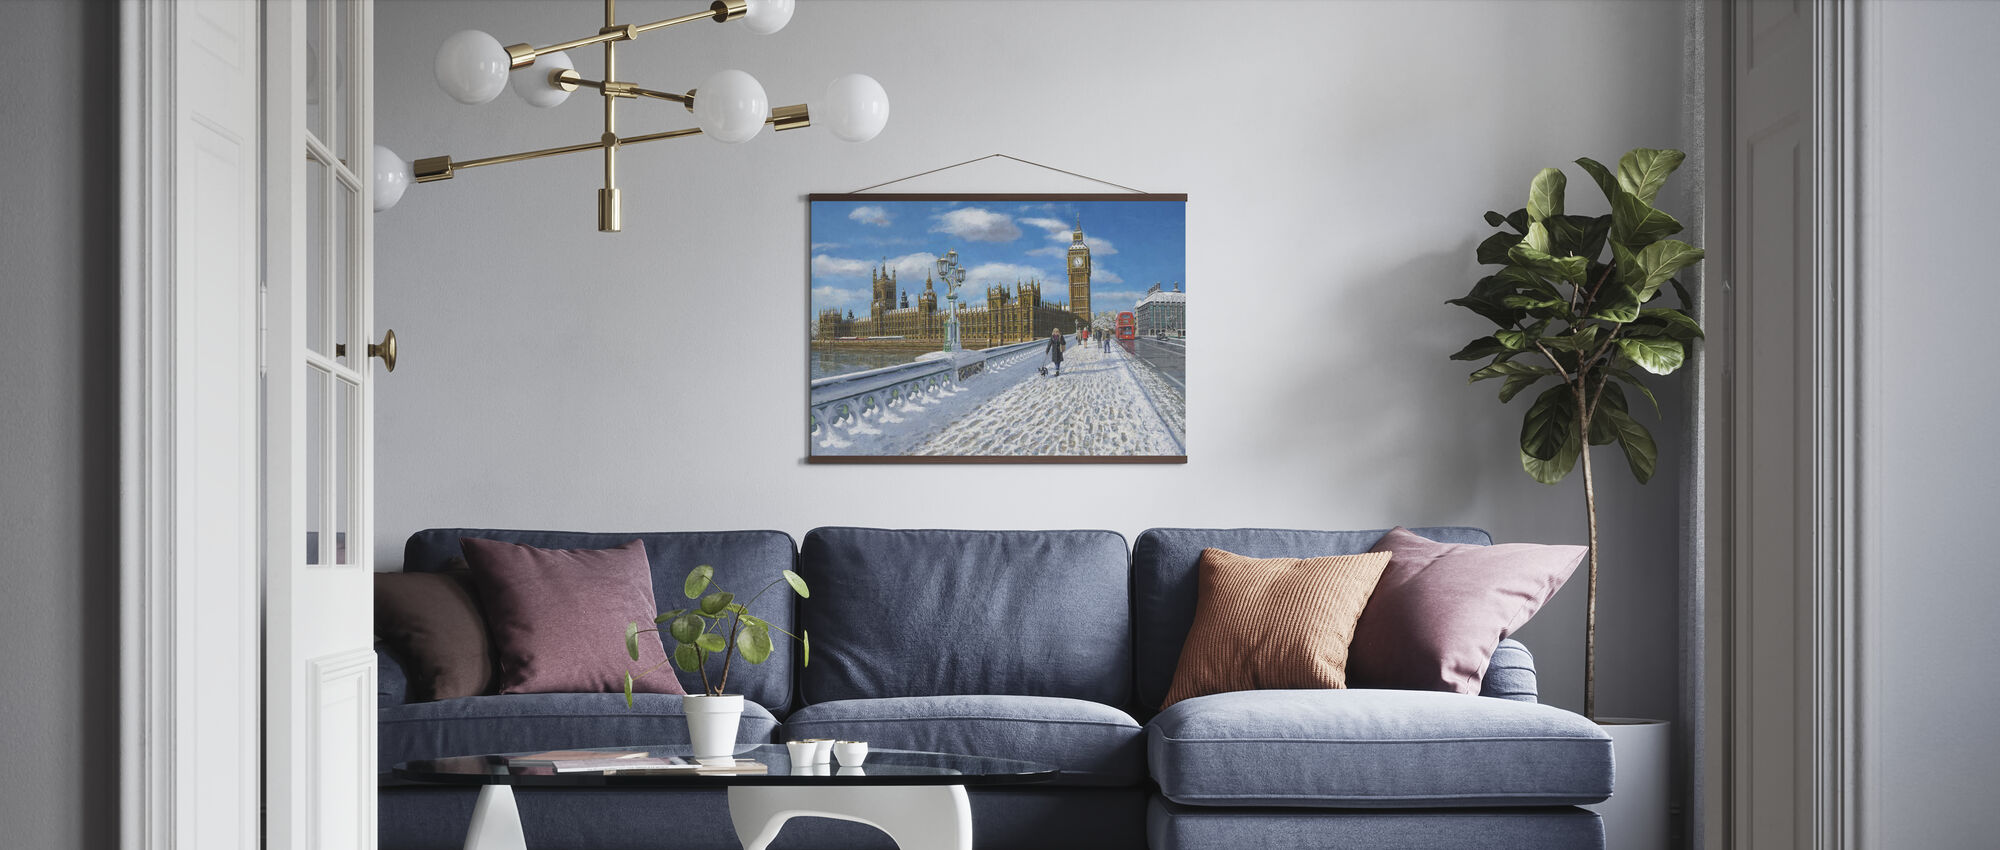 Winter sun Houses of Parliament - London - Poster - Wohnzimmer